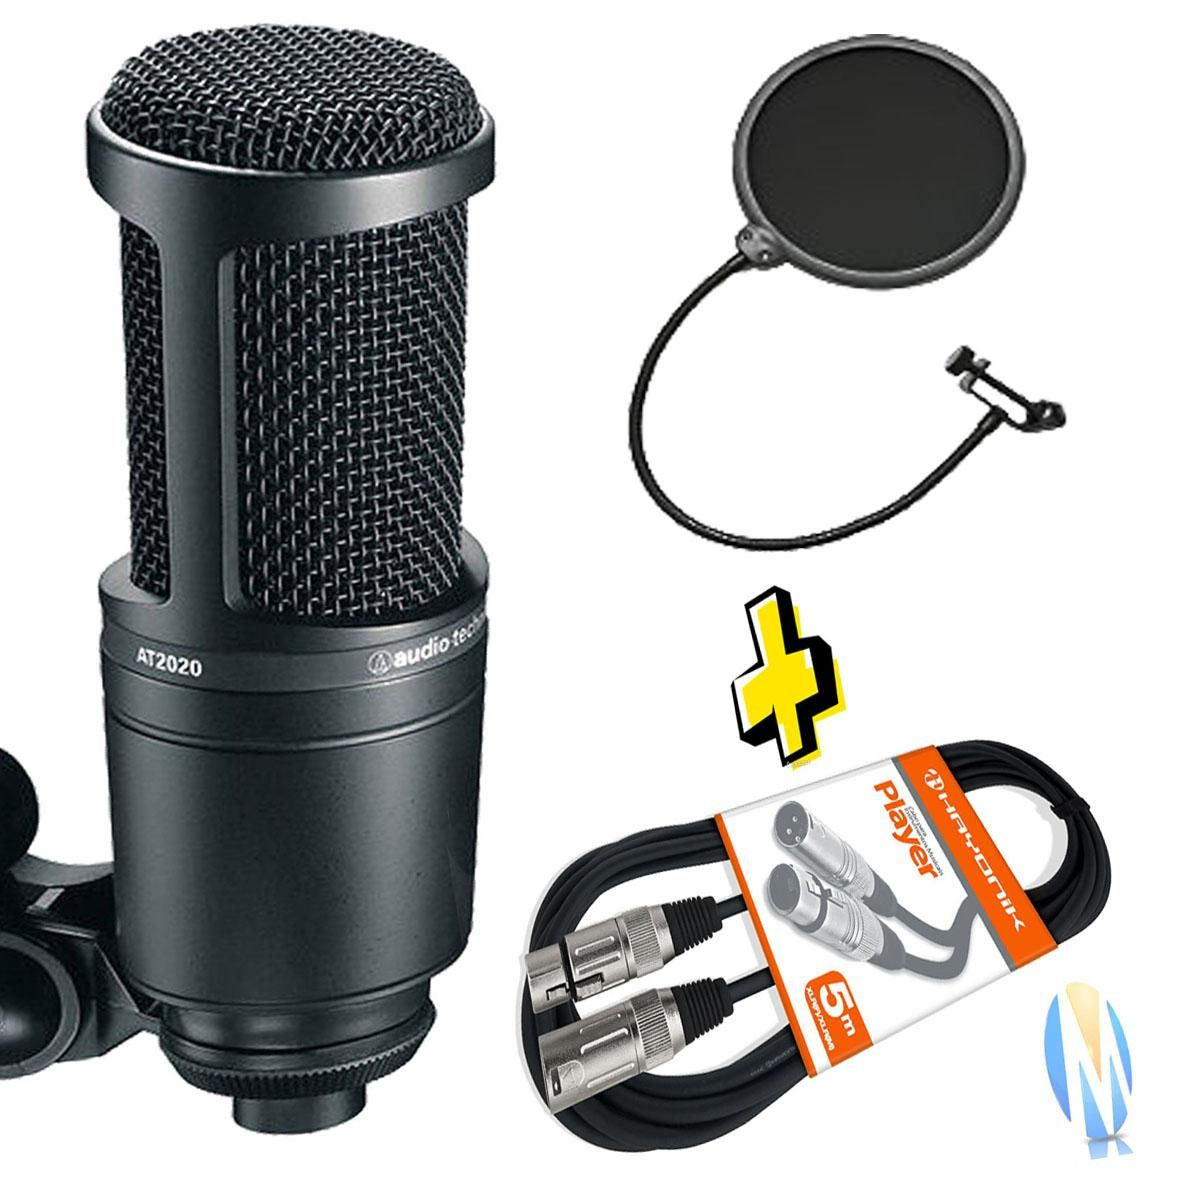 KIT Microfone Audio Technica At2020 + Cabo XLR+ Pop Filter